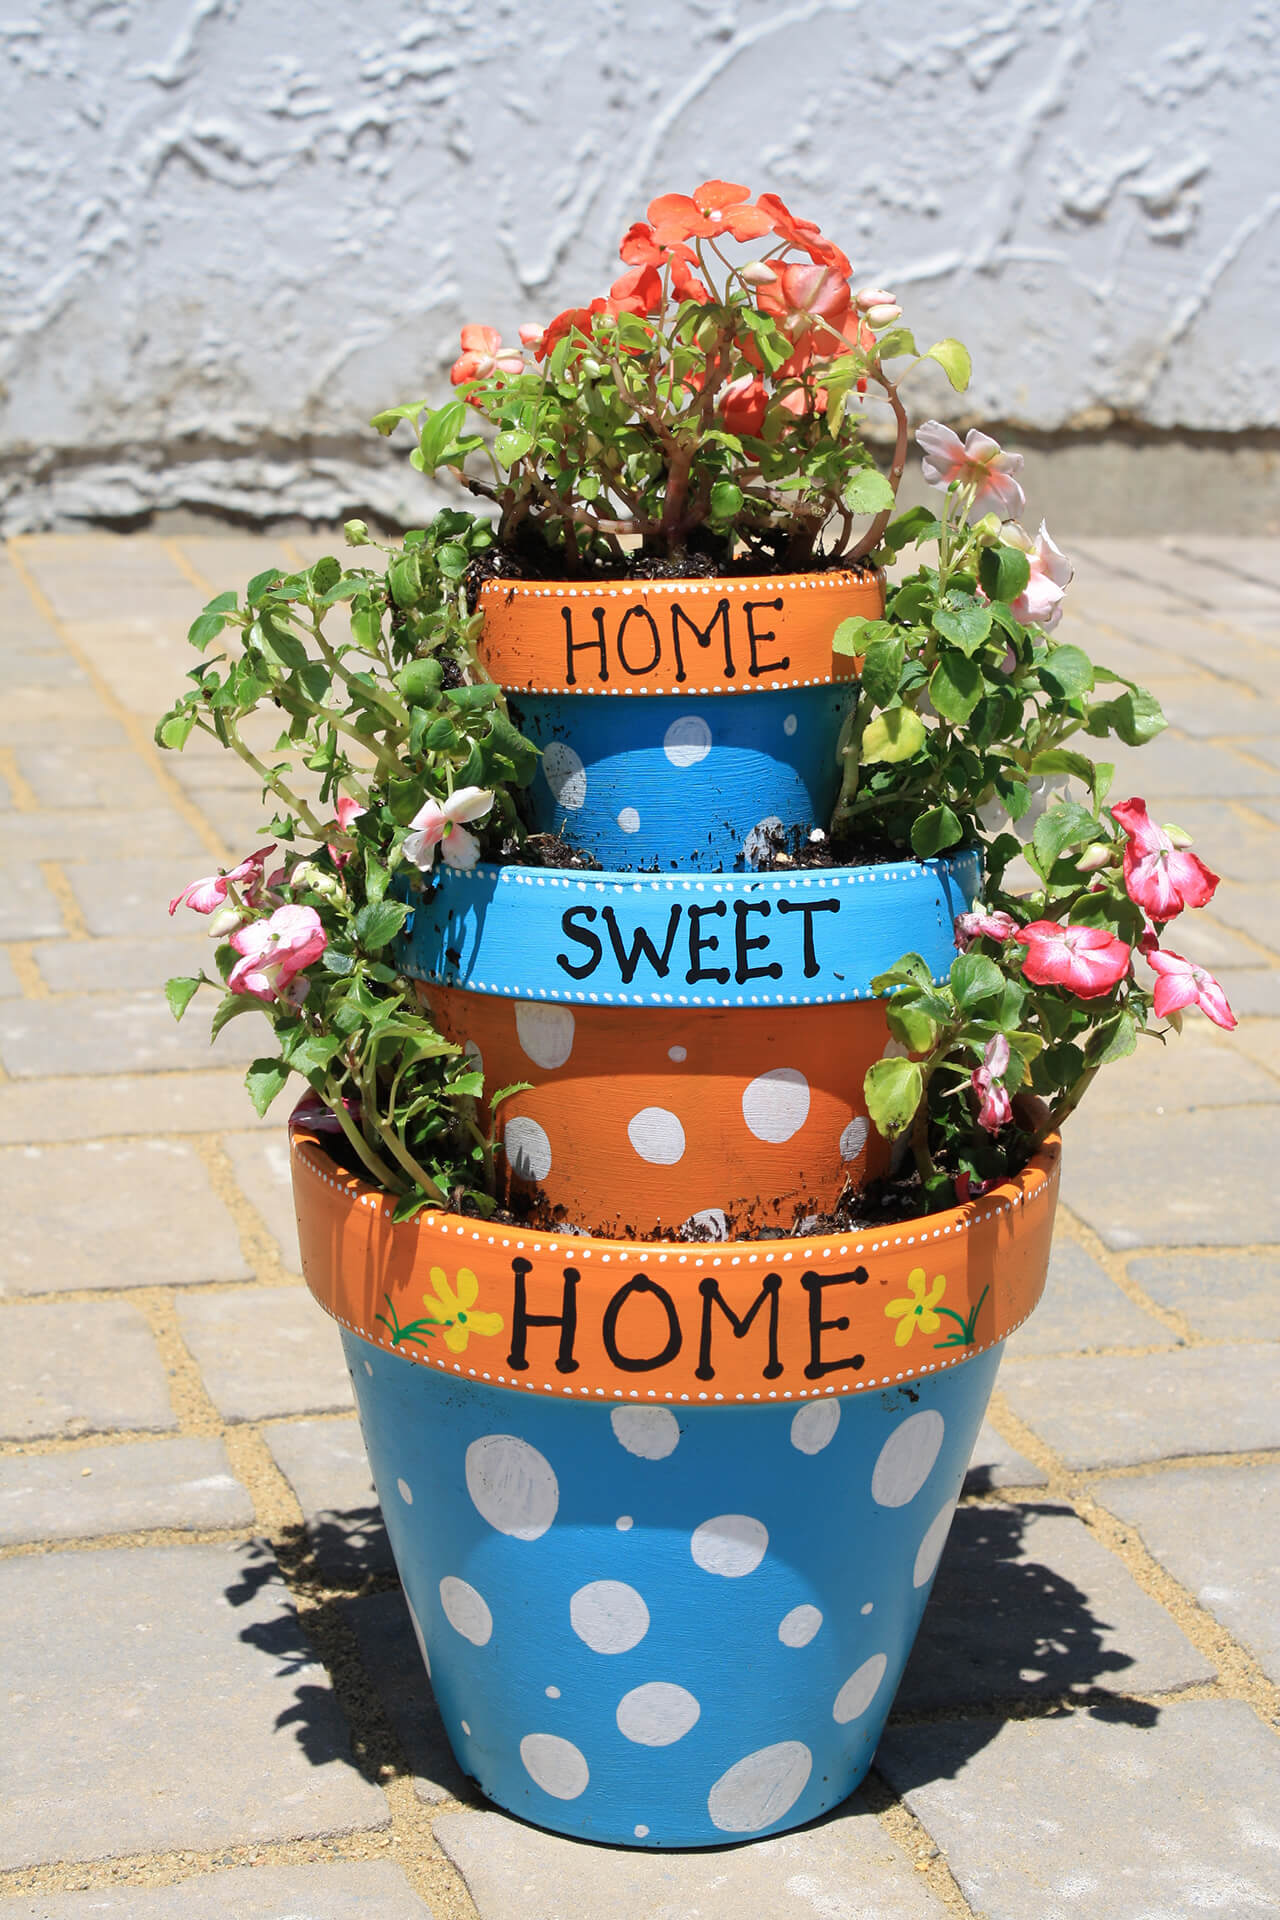 Discussion on this topic: How to Make Concrete Flower Pots, how-to-make-concrete-flower-pots/